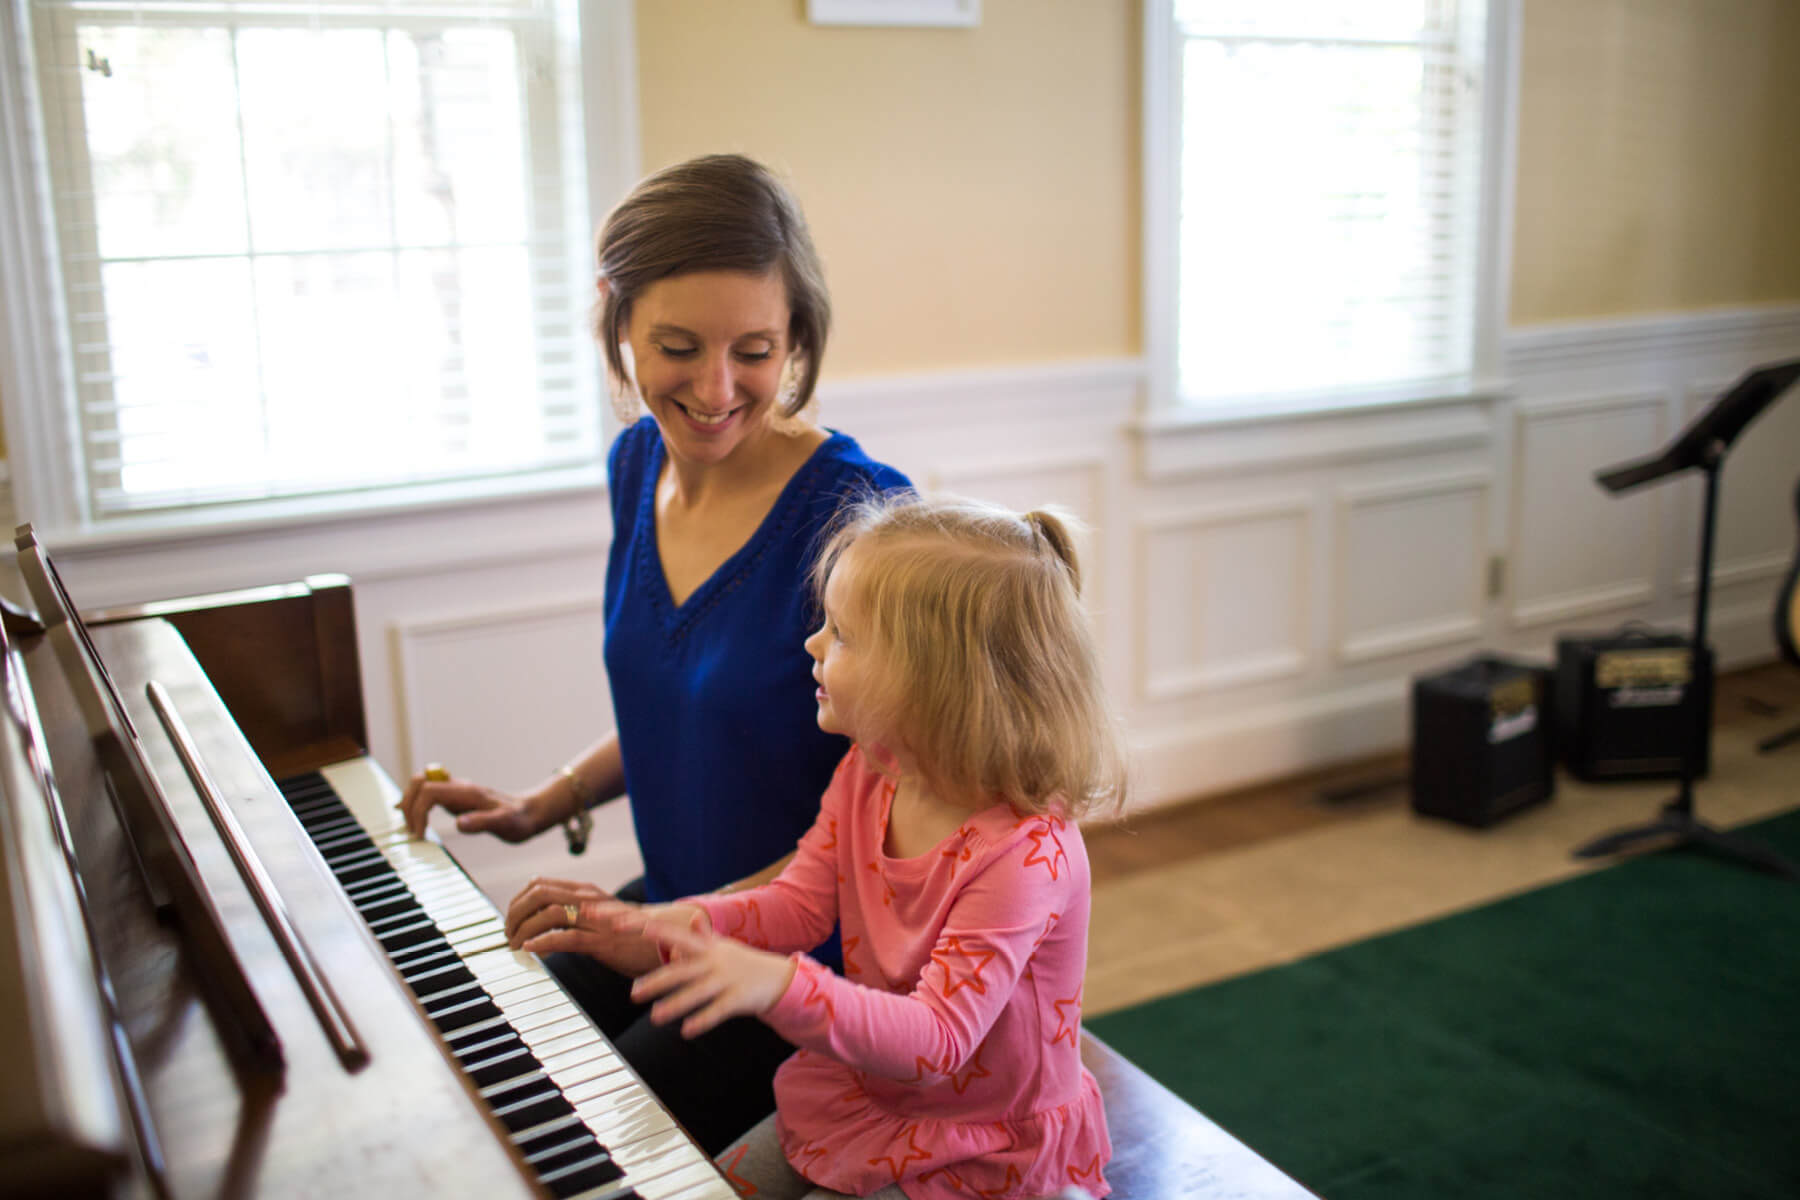 Instructor and young student playing piano